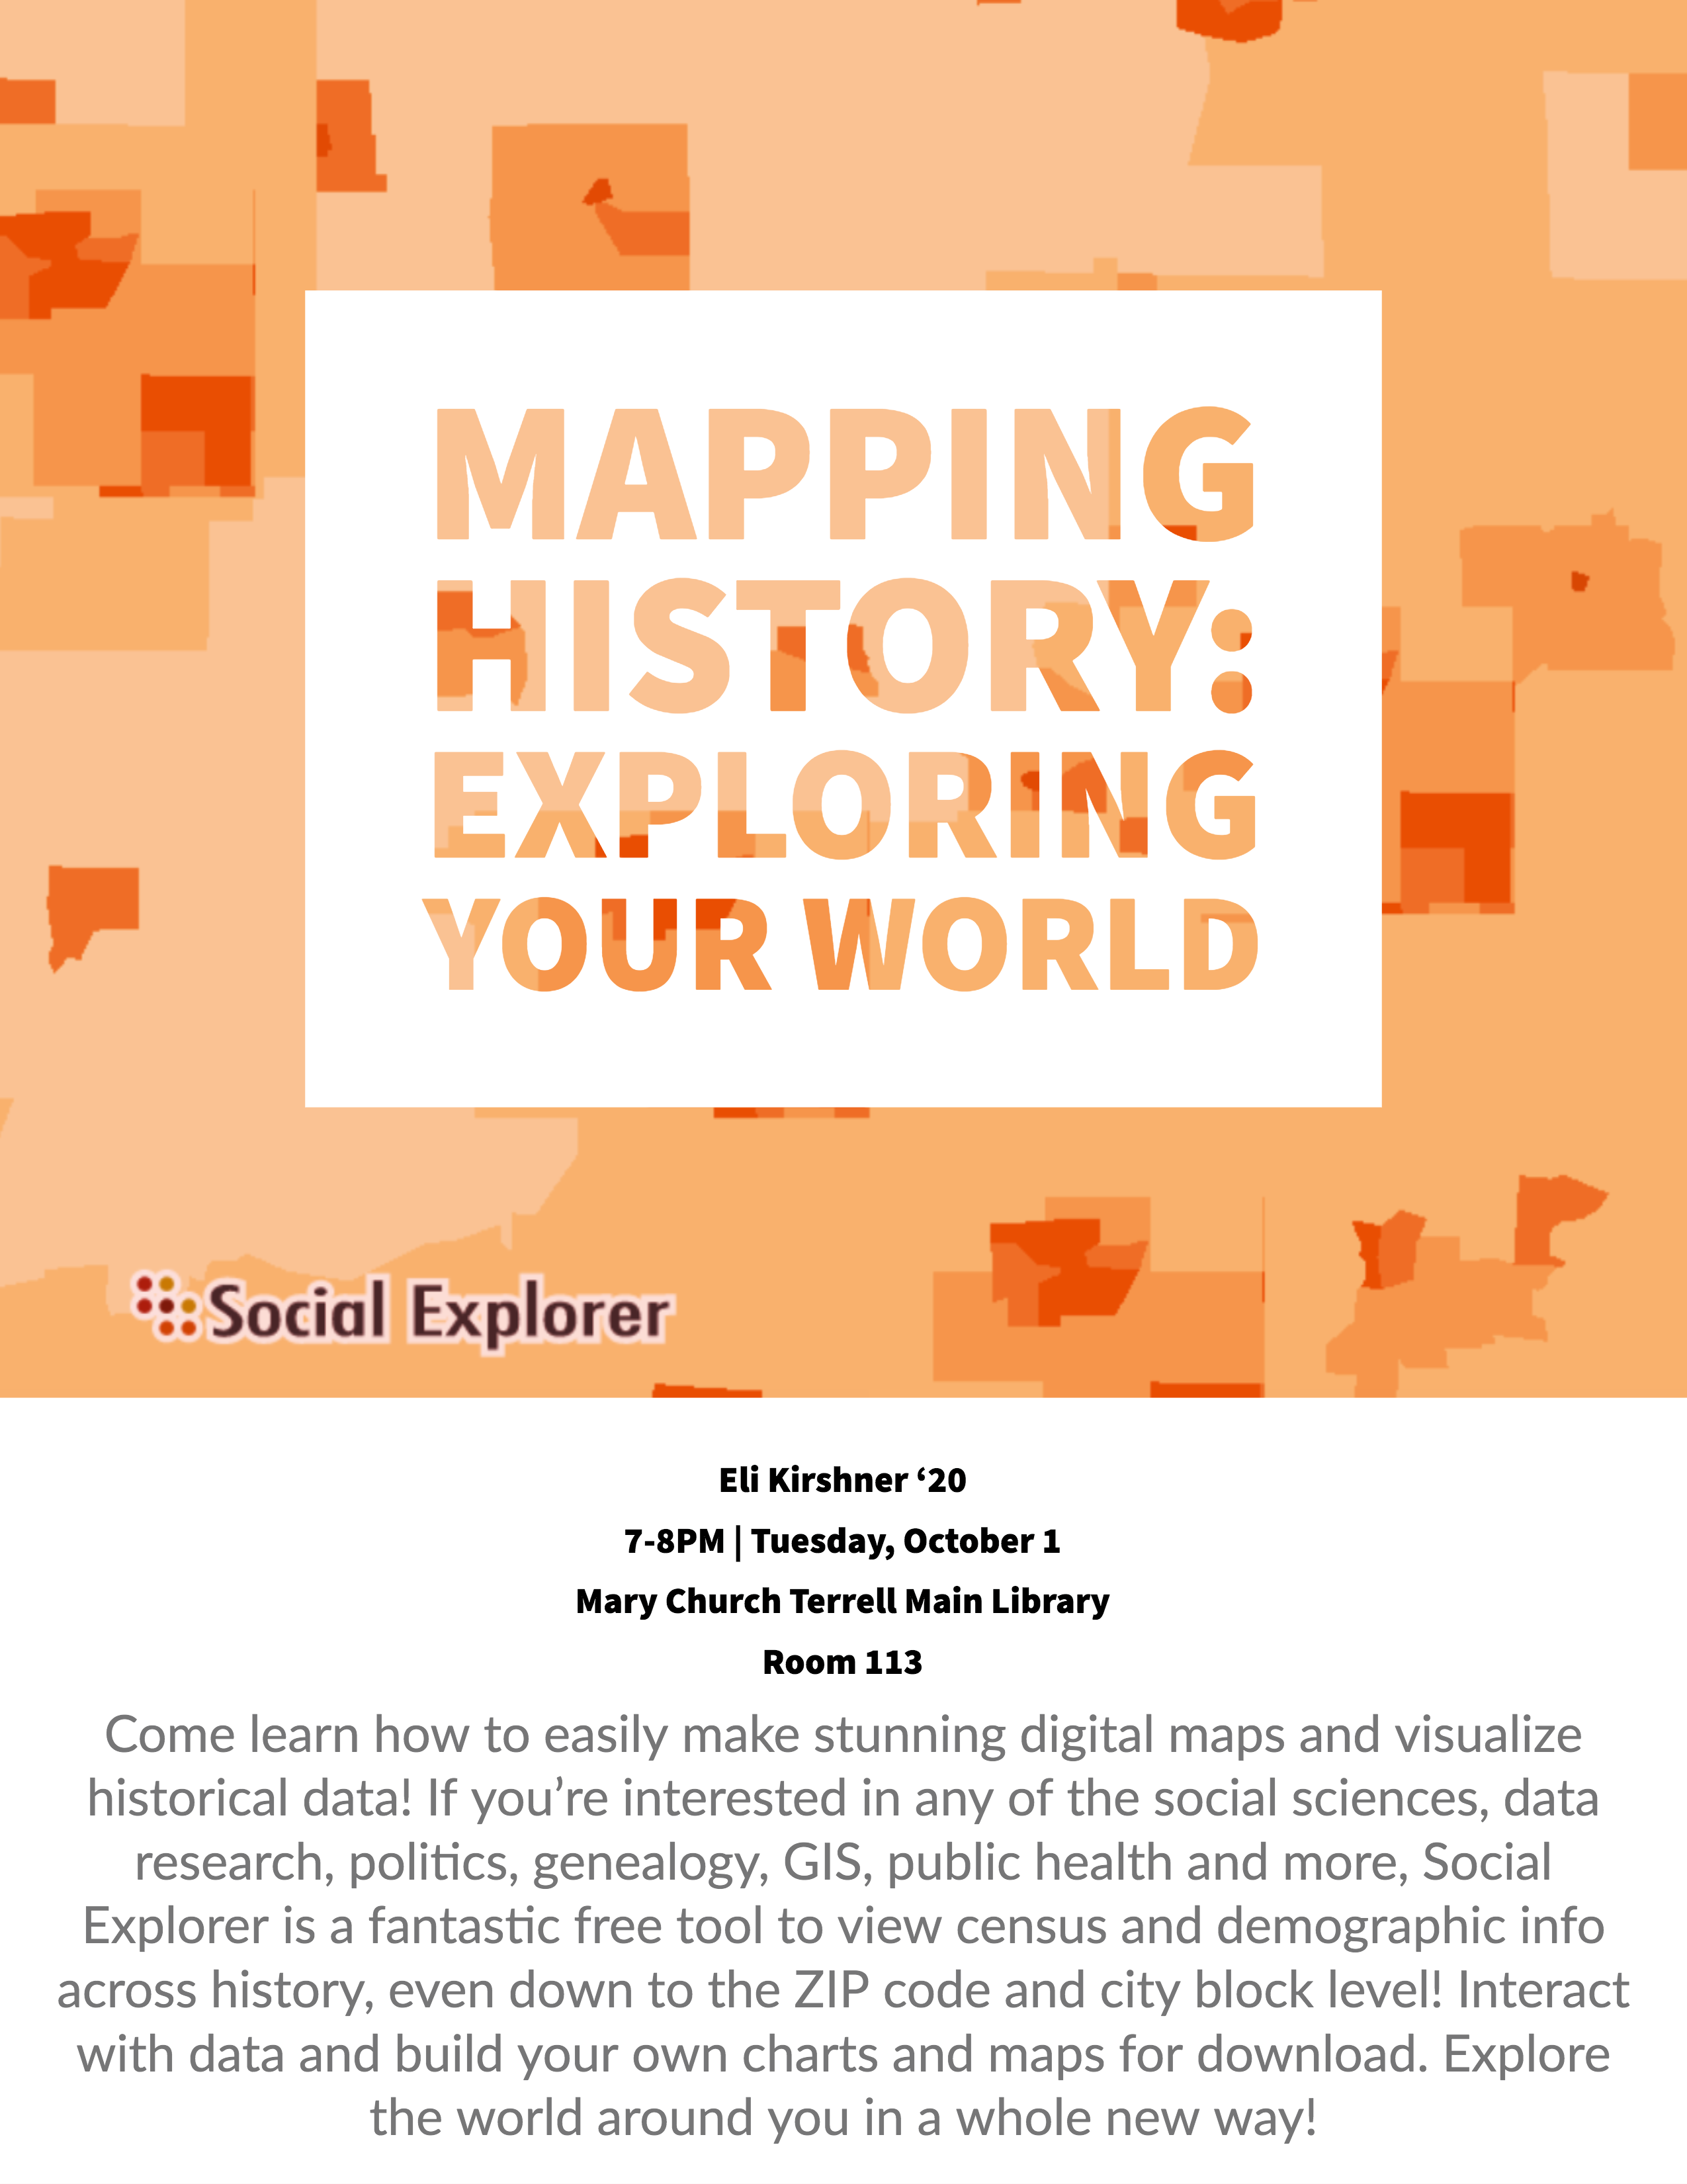 Mapping history: Exploring your world